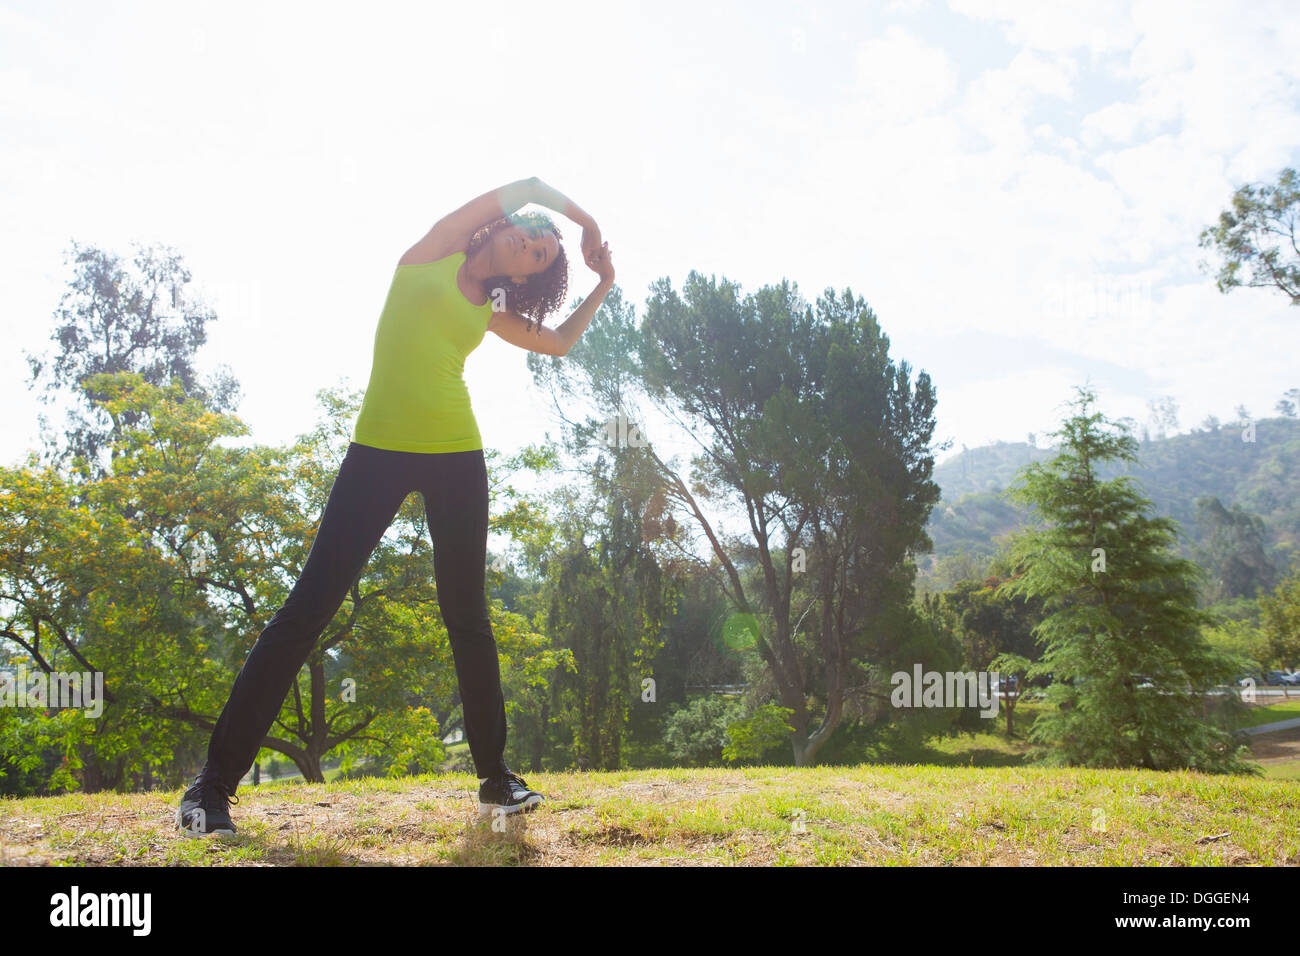 Mid adult woman stretching in park - Stock Image